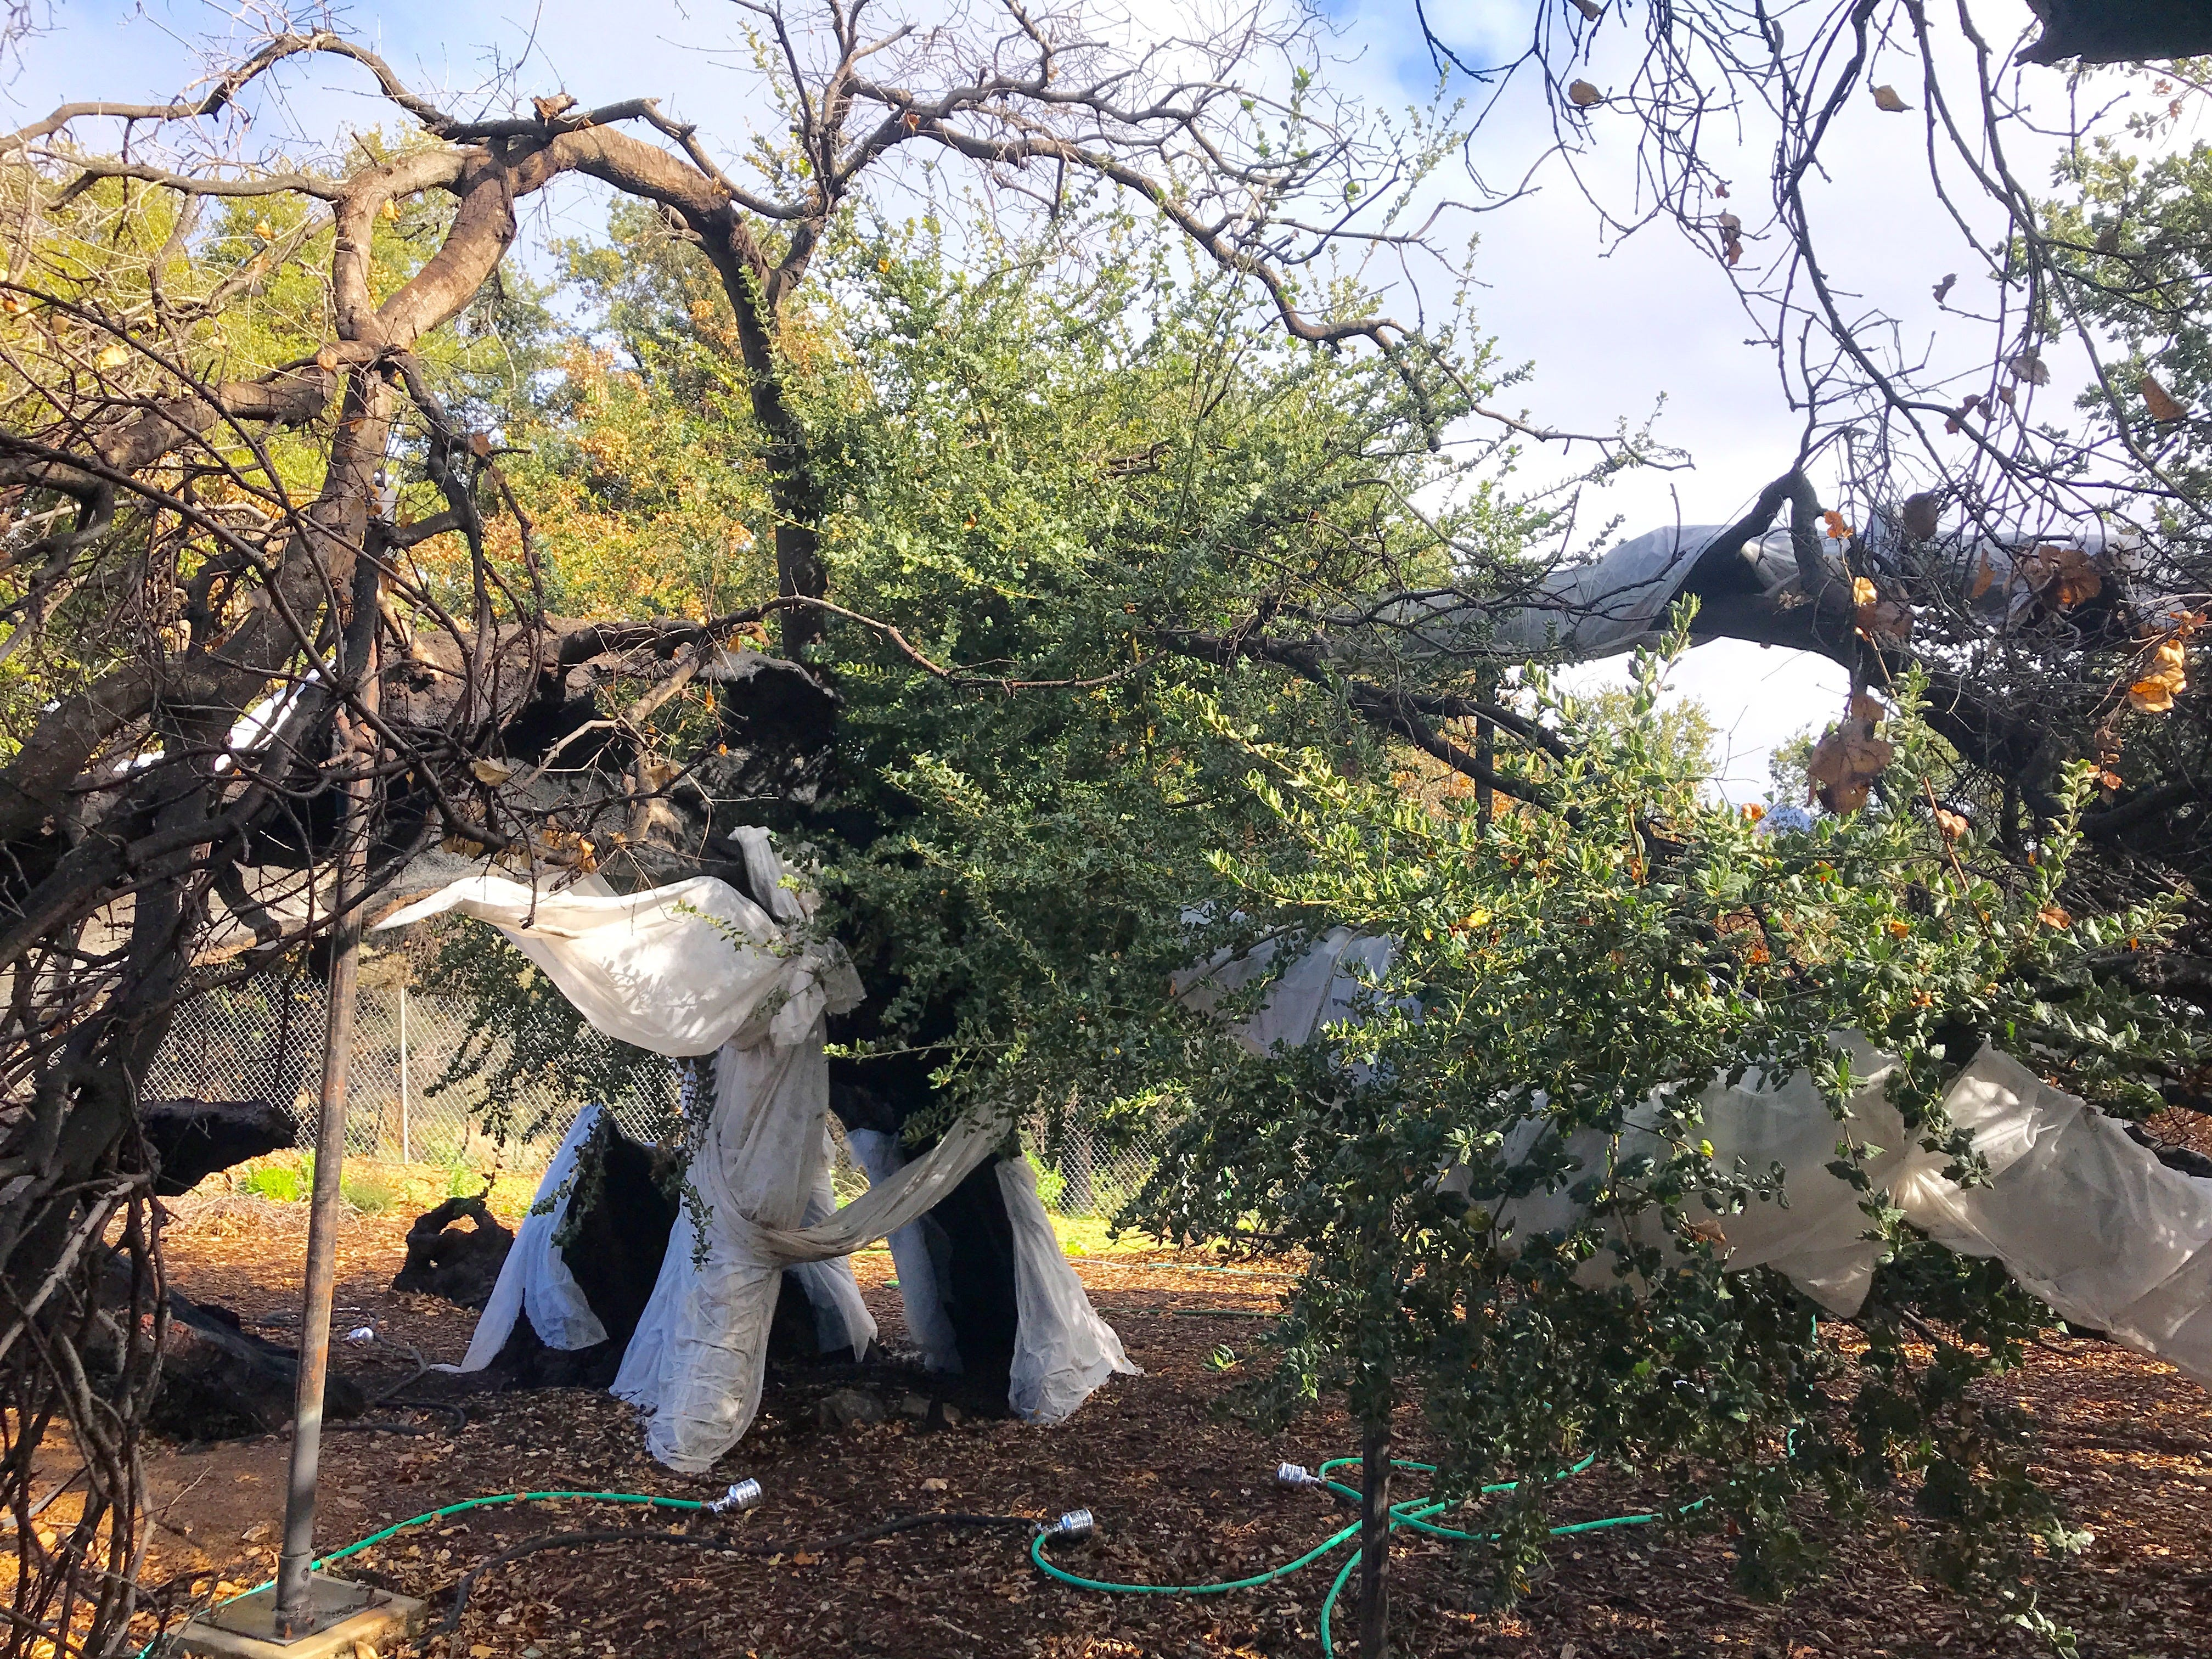 Baba's Tree, named for Indian spiritual teacher Meher Baba, is showing positive signs of recovery after being badly burned during the Thomas Fire.